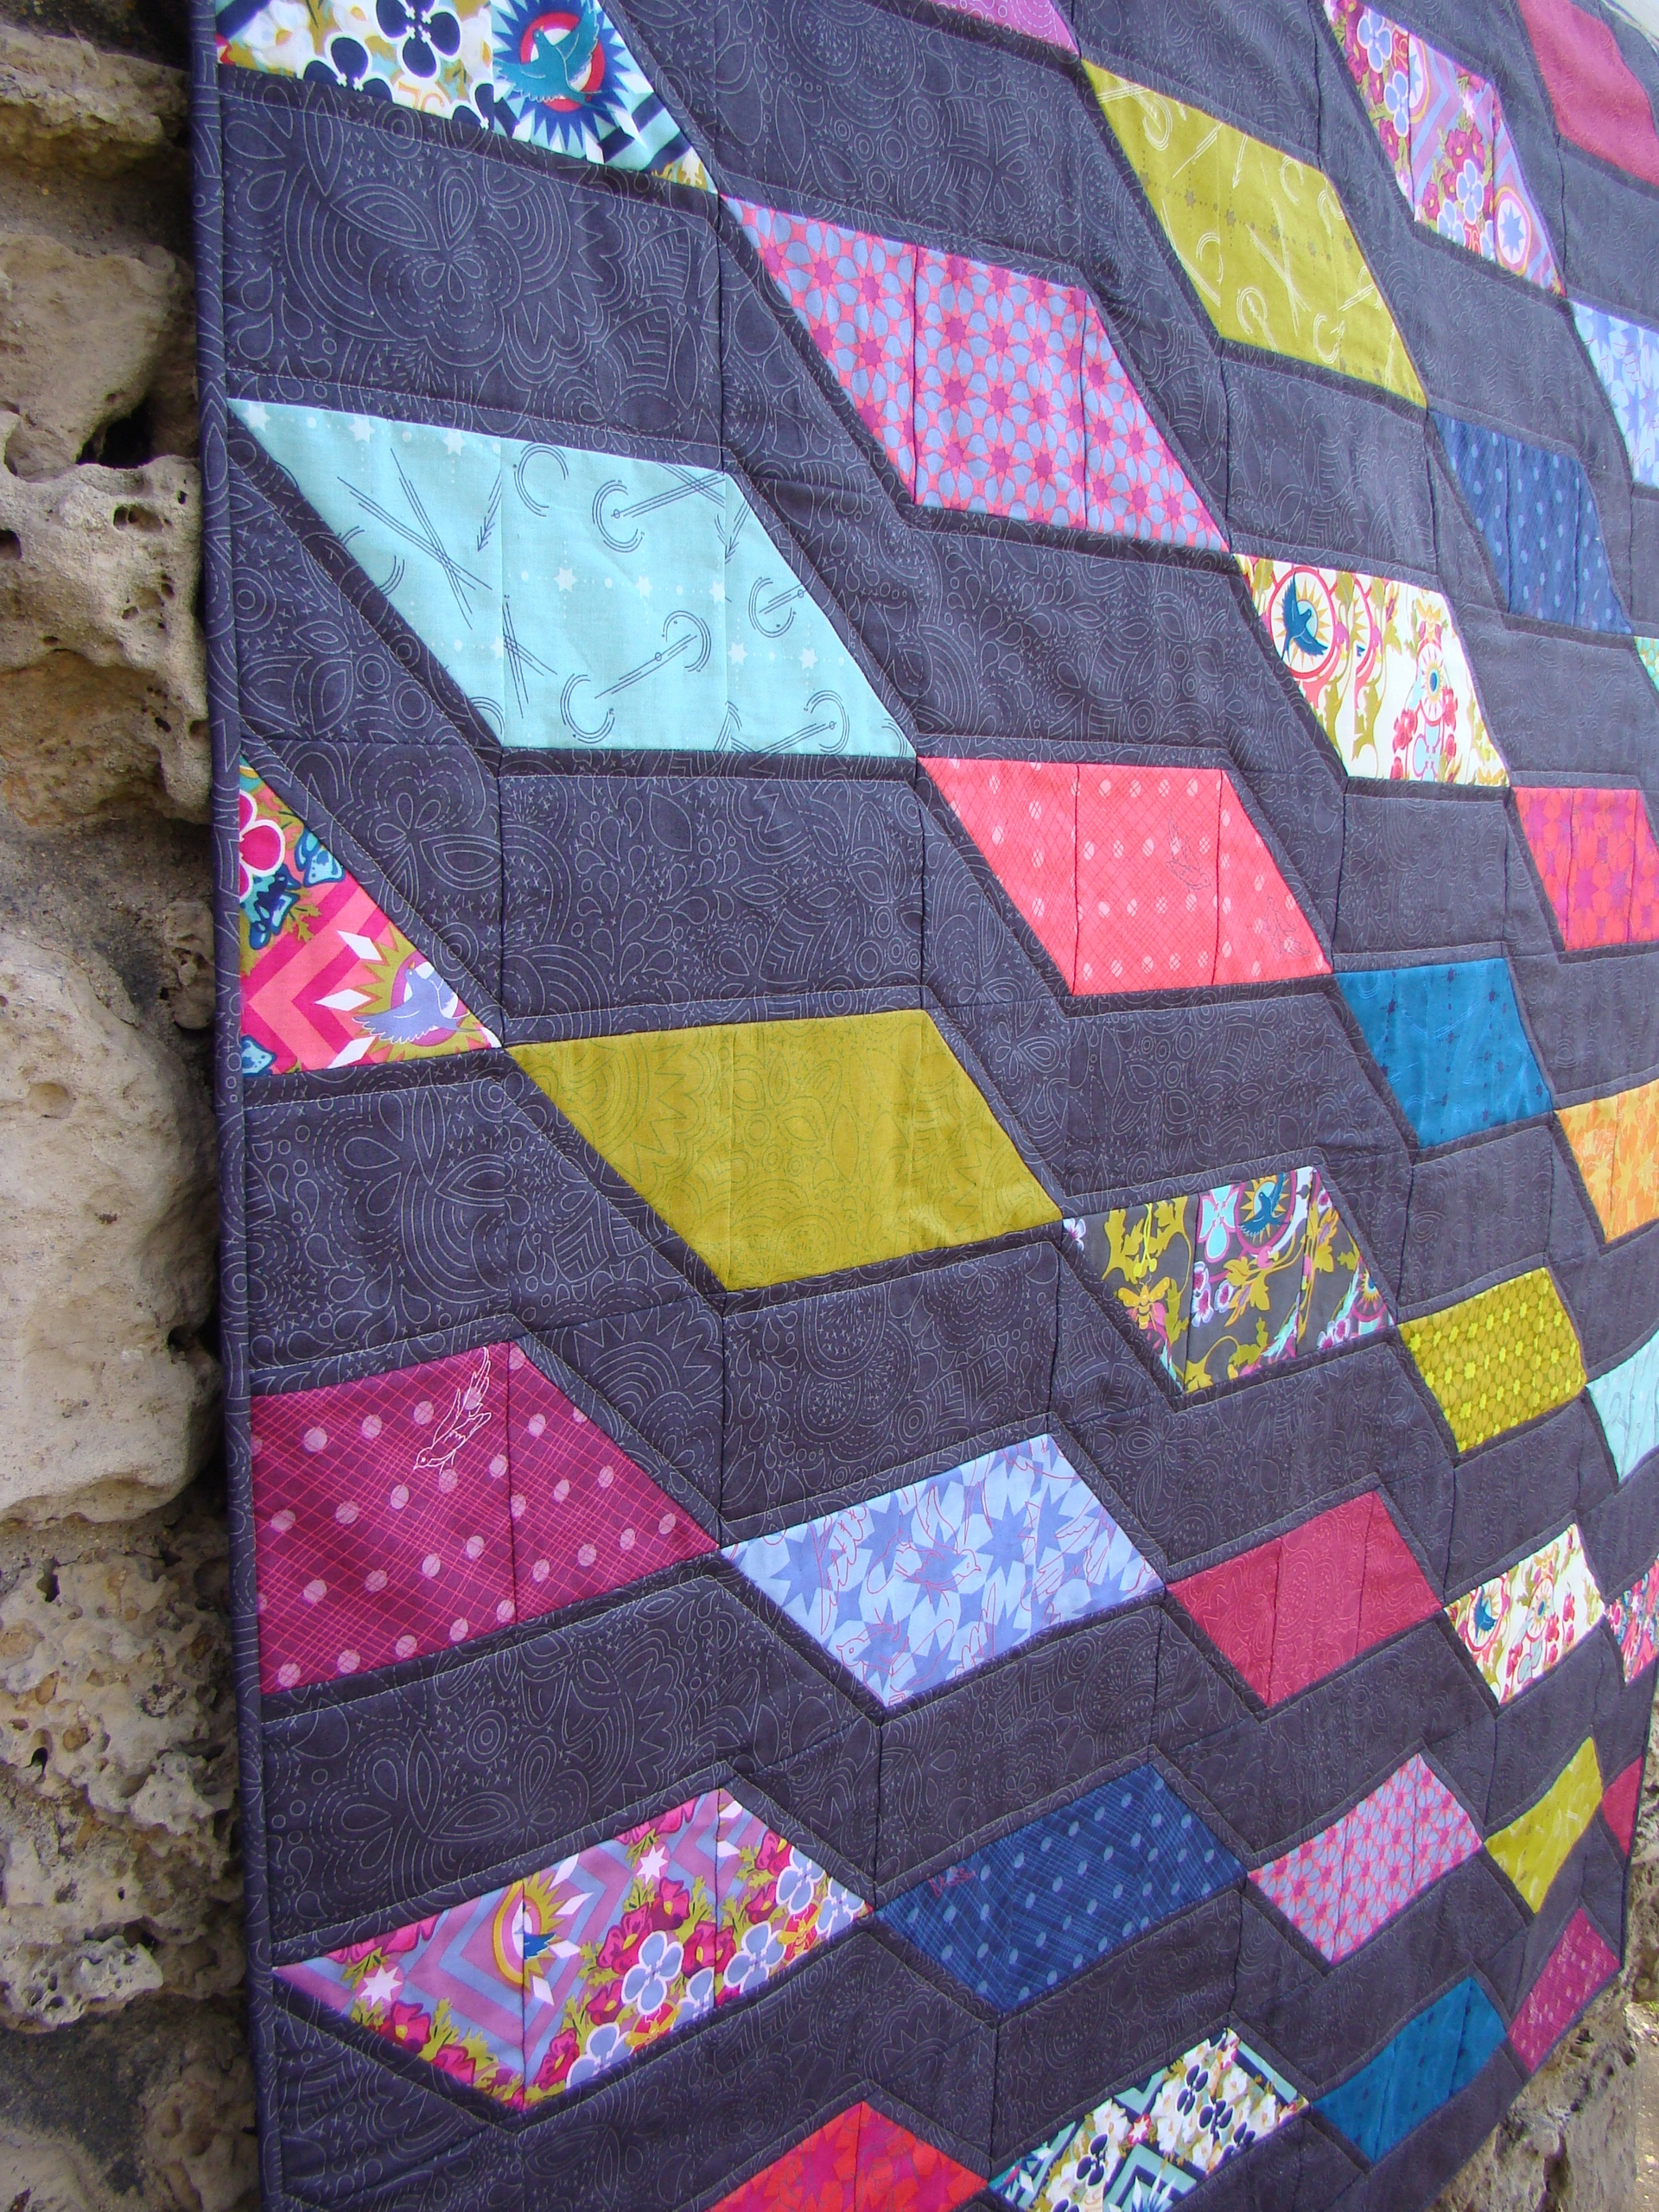 released quilt pattern today! R - sliceofpilife | ello